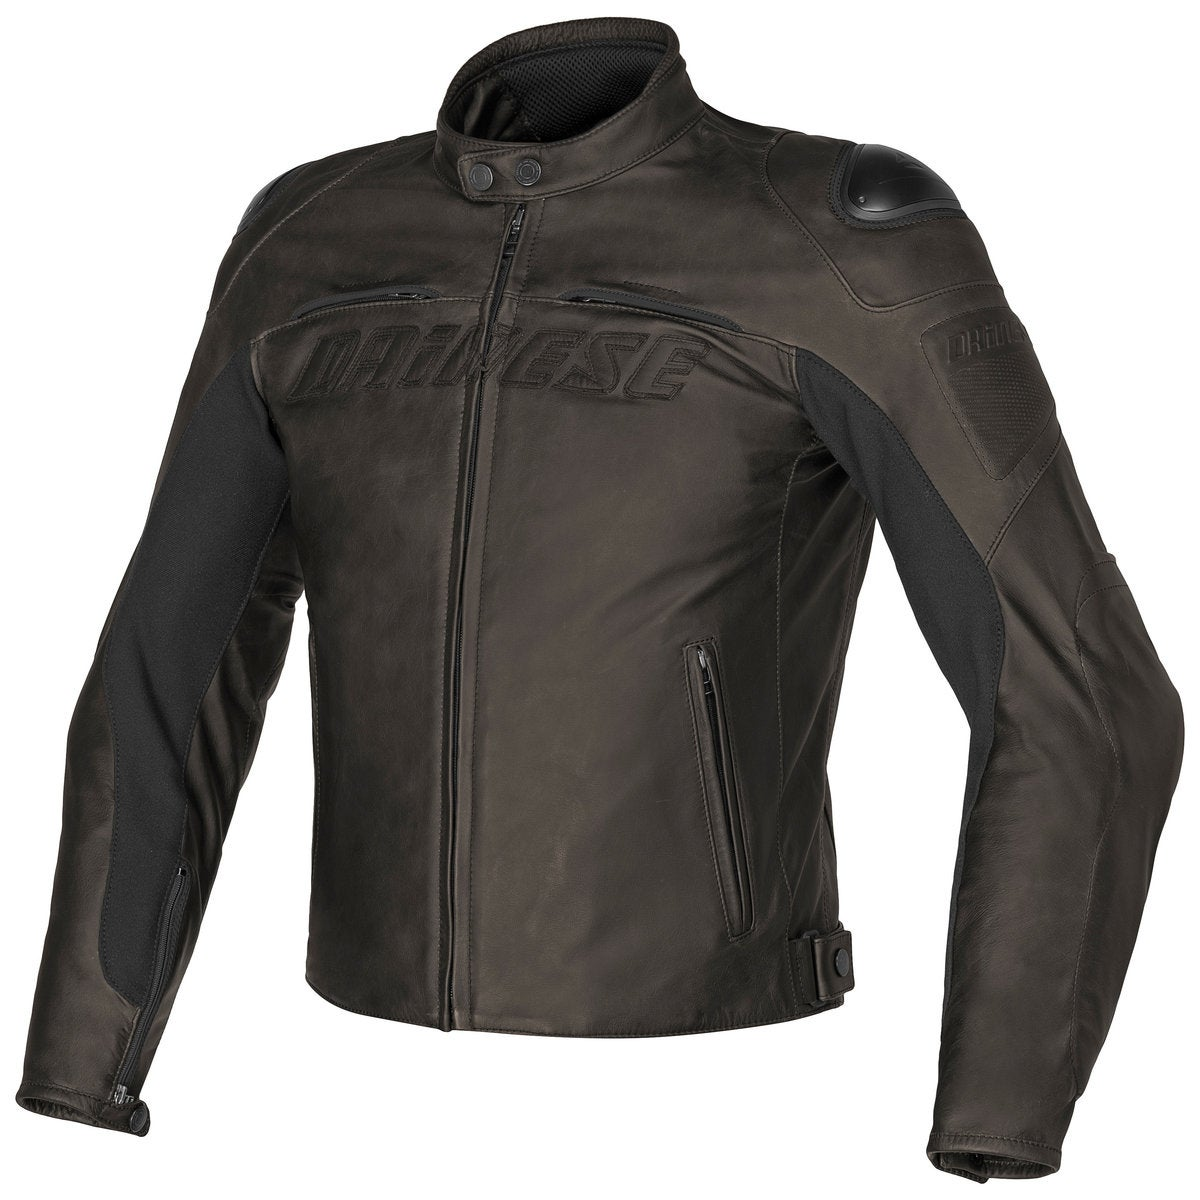 Dainese Speed Naked Jacket Review at RevZilla.com - YouTube